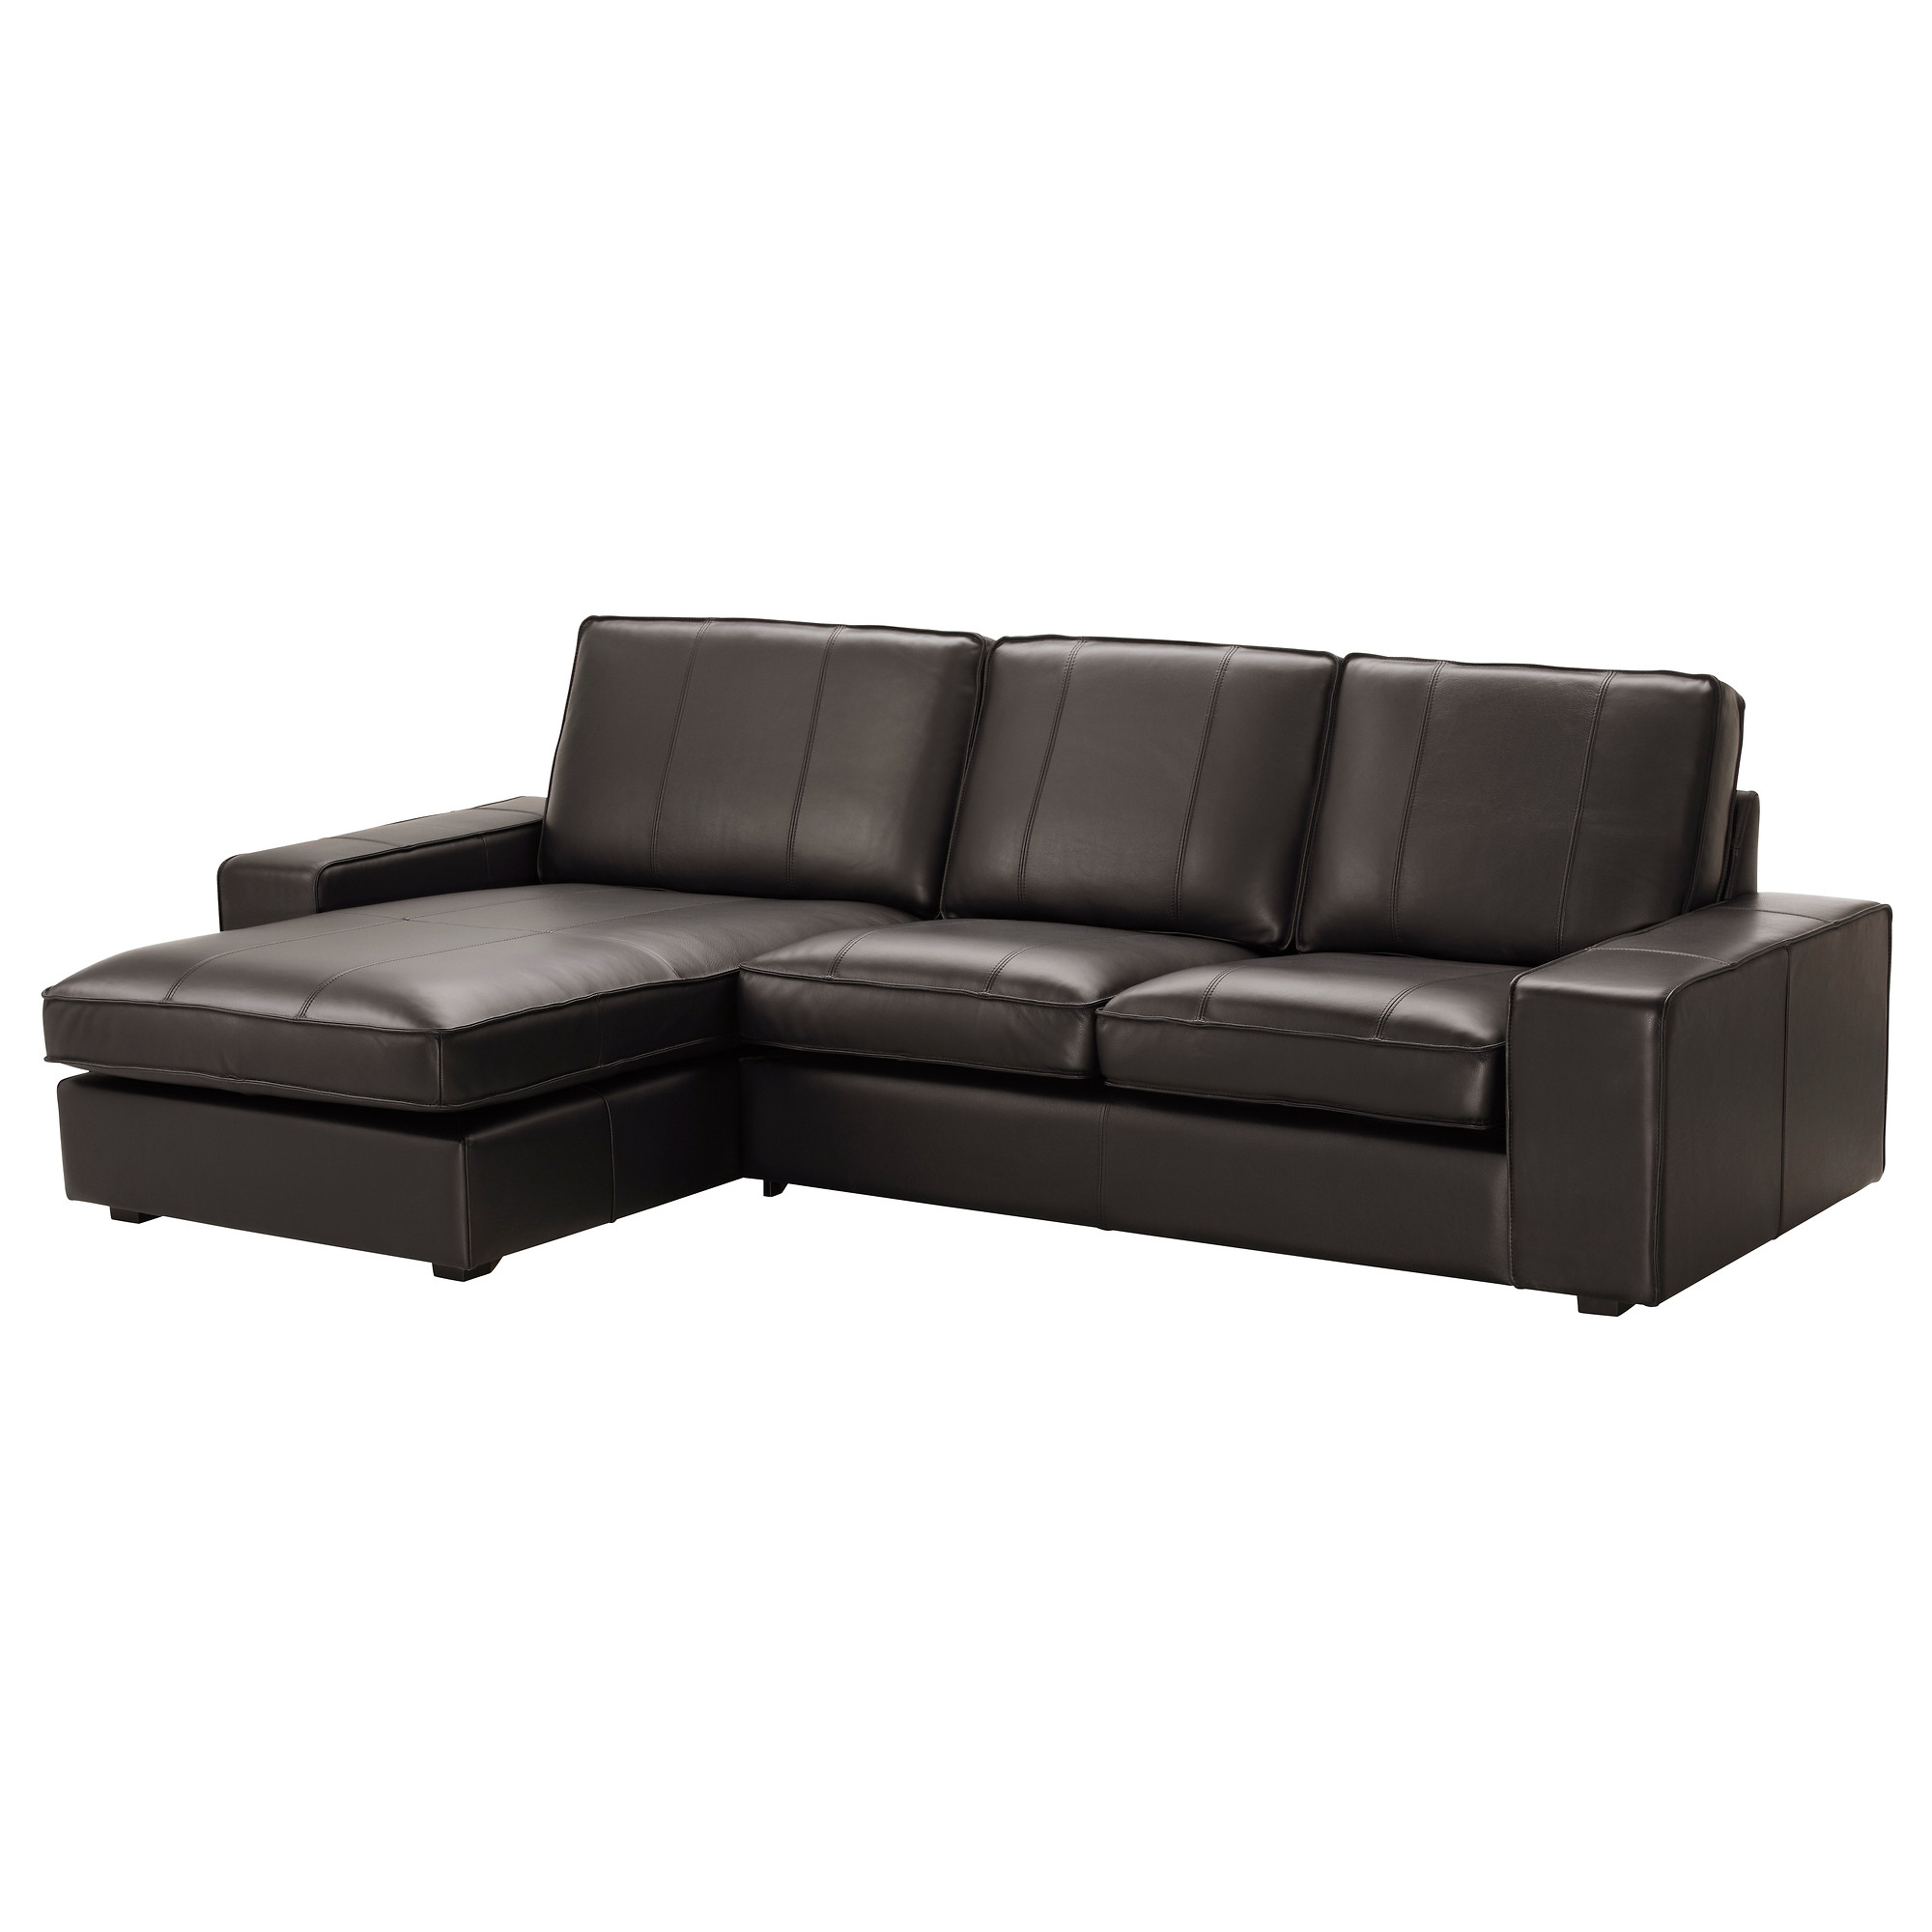 Delightful KIVIK Sofa   With Chaise/Grann/Bomstad Black   IKEA